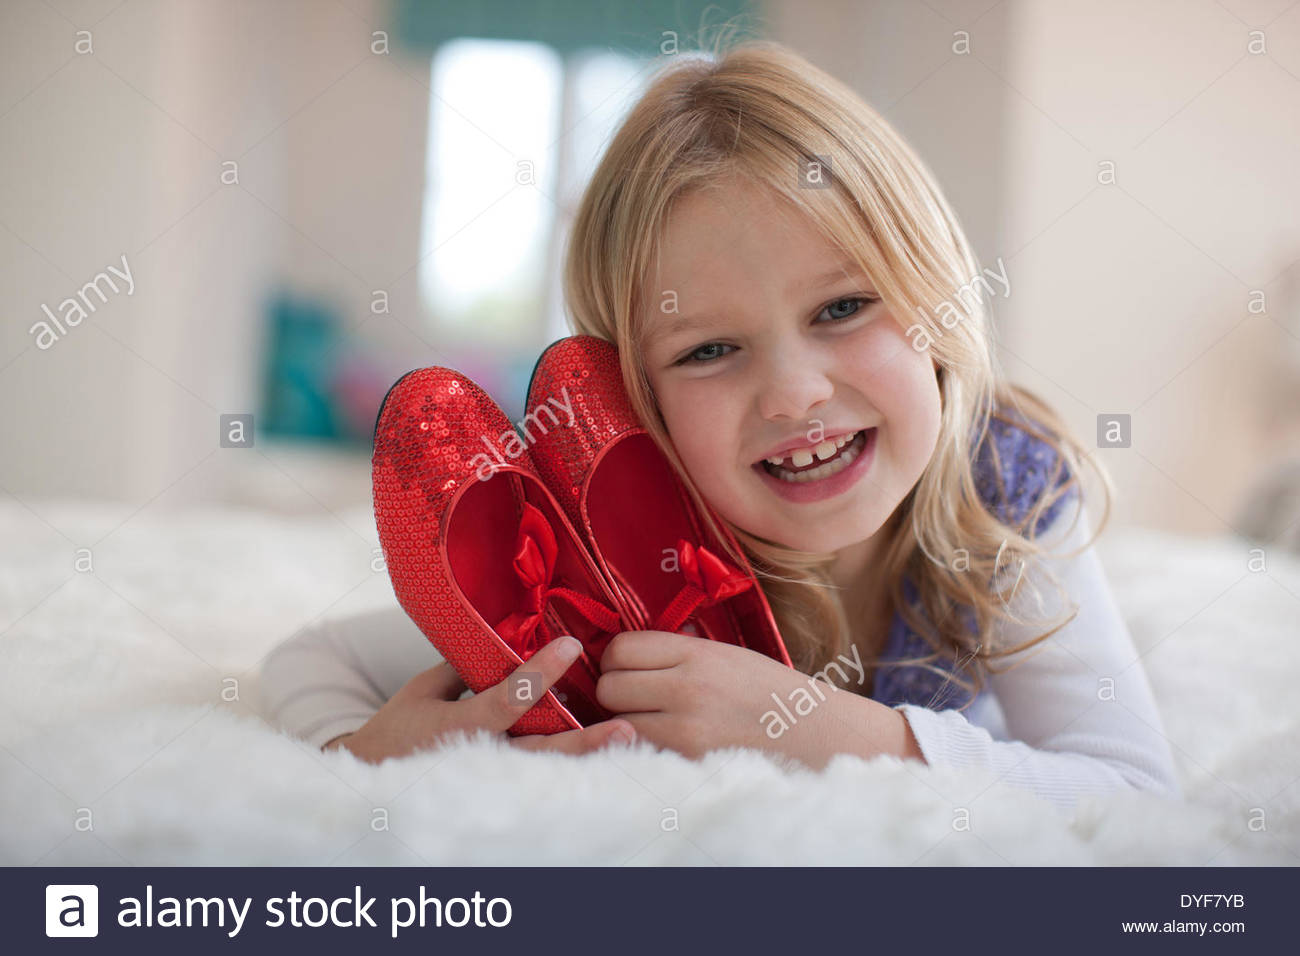 Smiling girl holding red shoes Photo Stock